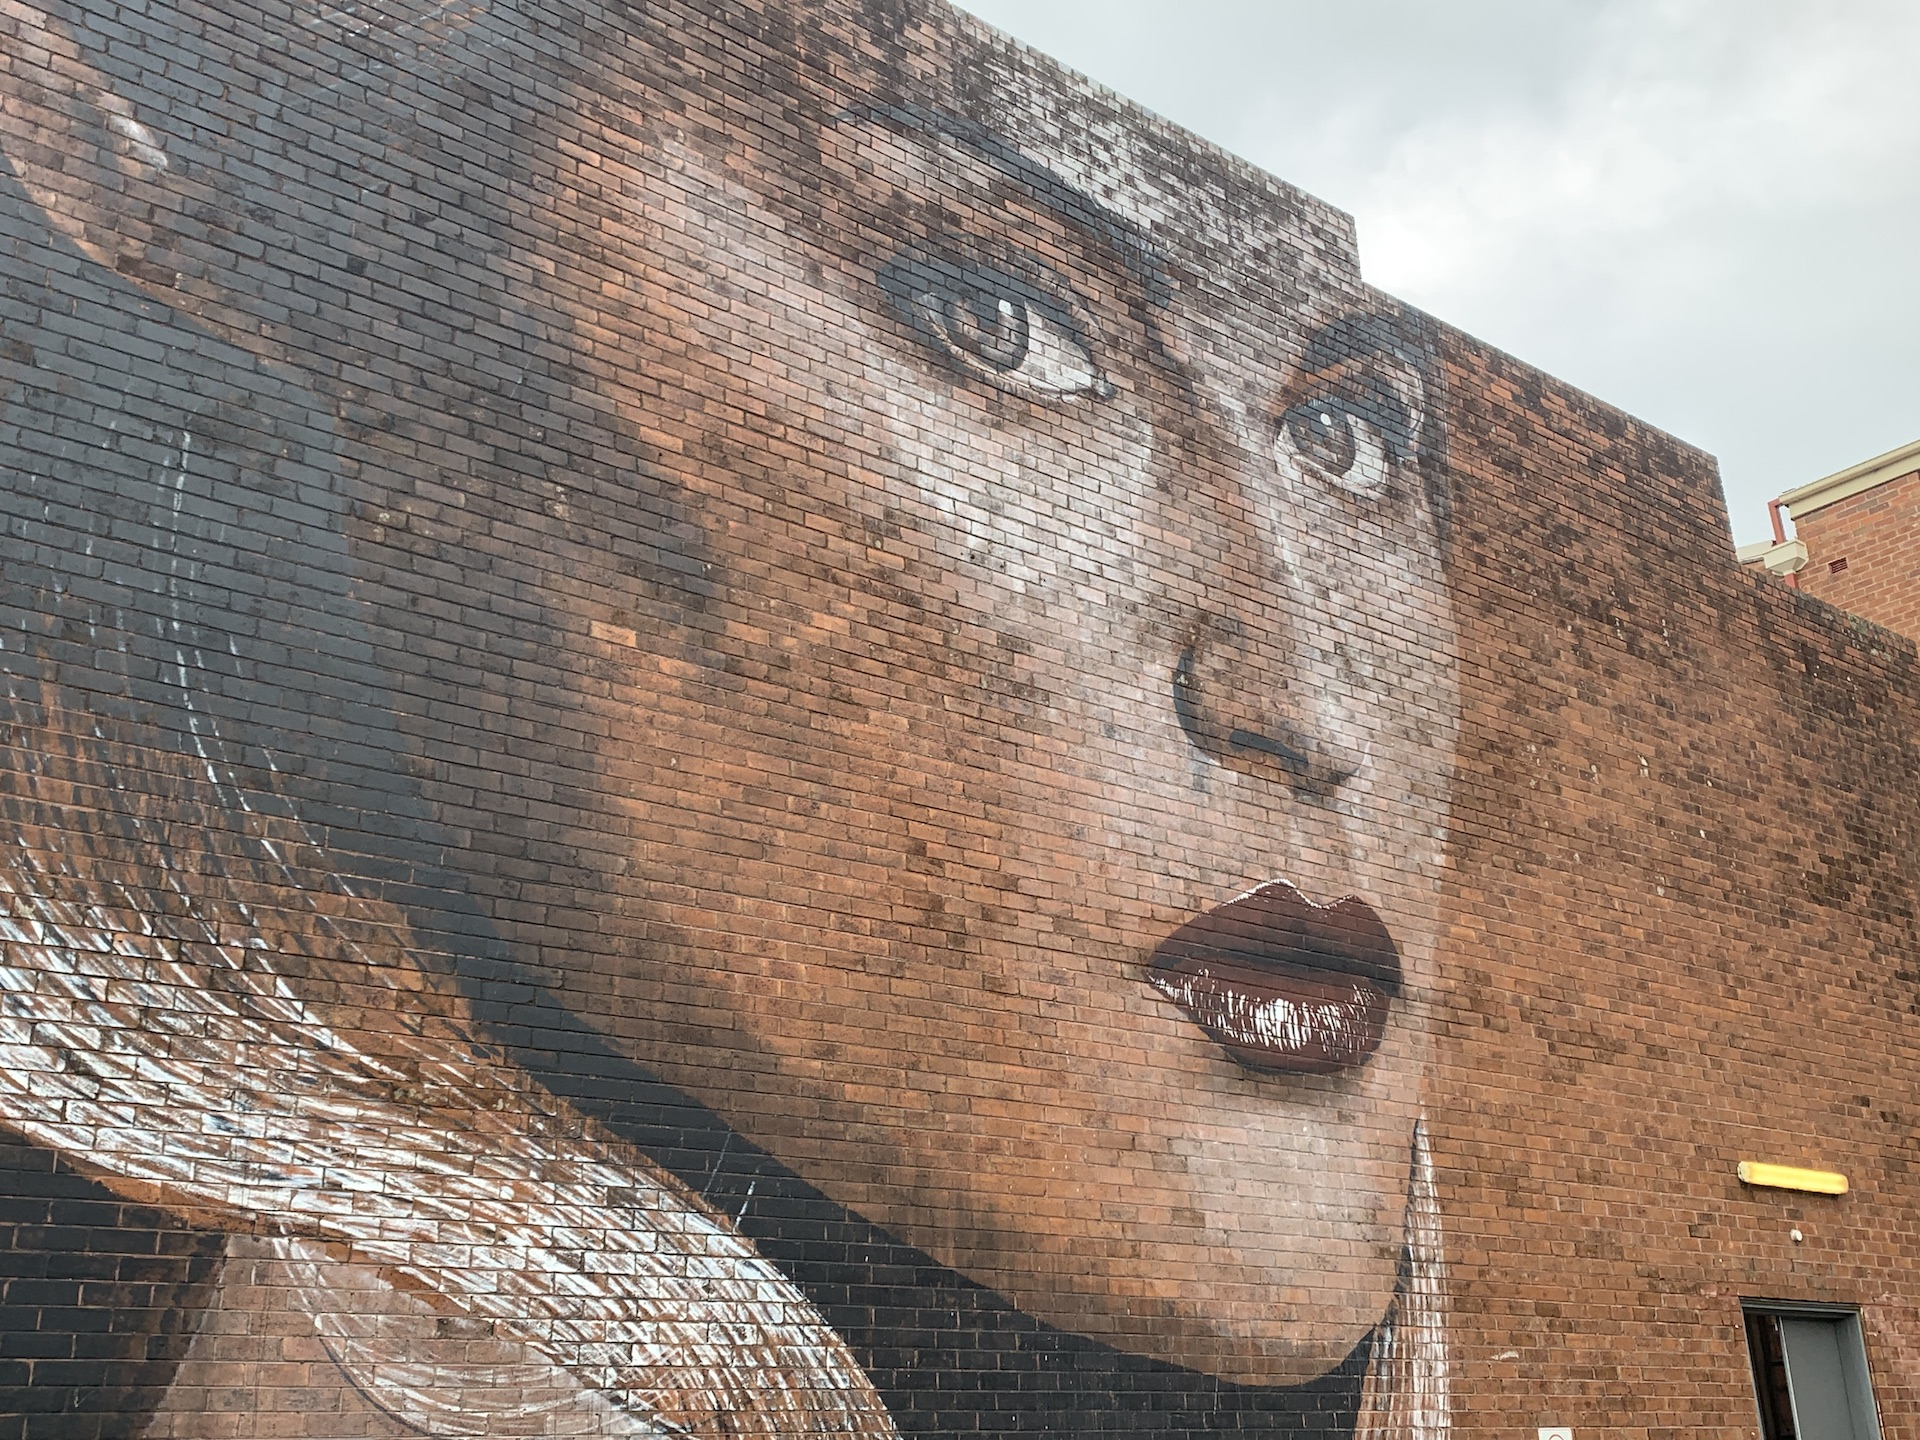 Street mural of a woman with red lips